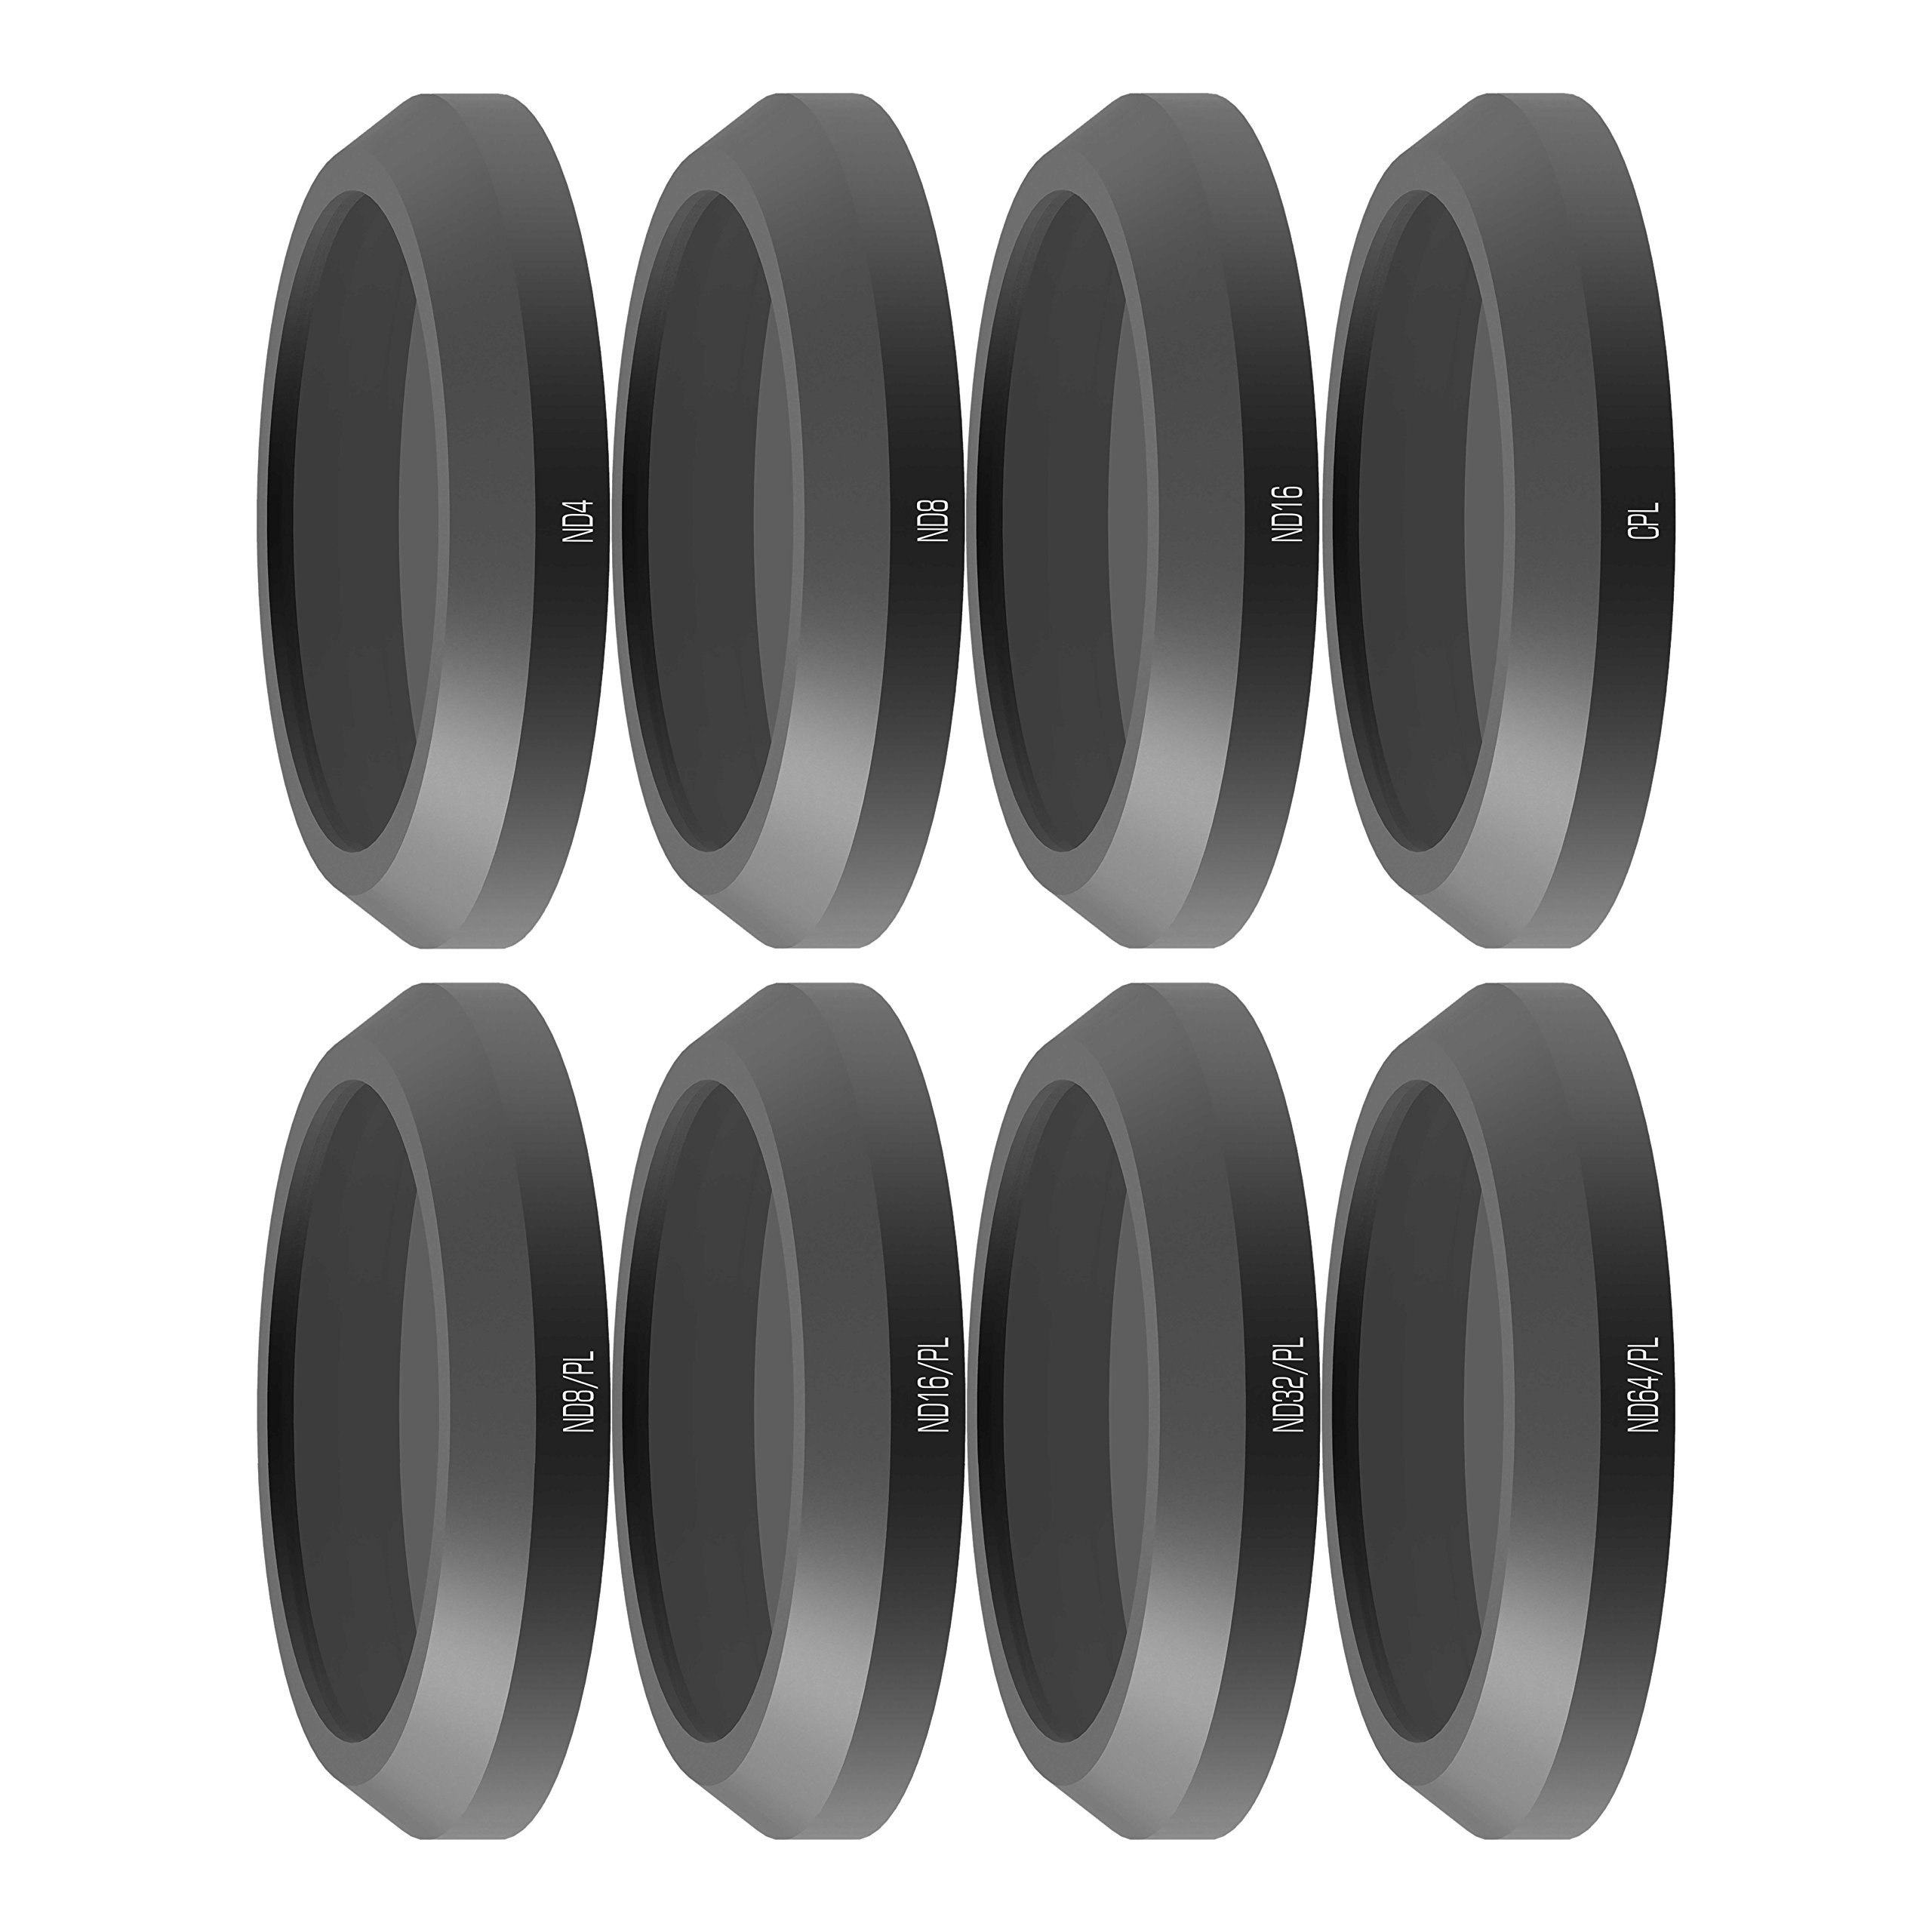 Freewell All Day-8Pack ND4, ND8, ND16, CPL, ND8/PL, ND16/PL, ND32/PL, ND64/PL Compatible with Parrot Anafi Drone by Freewell